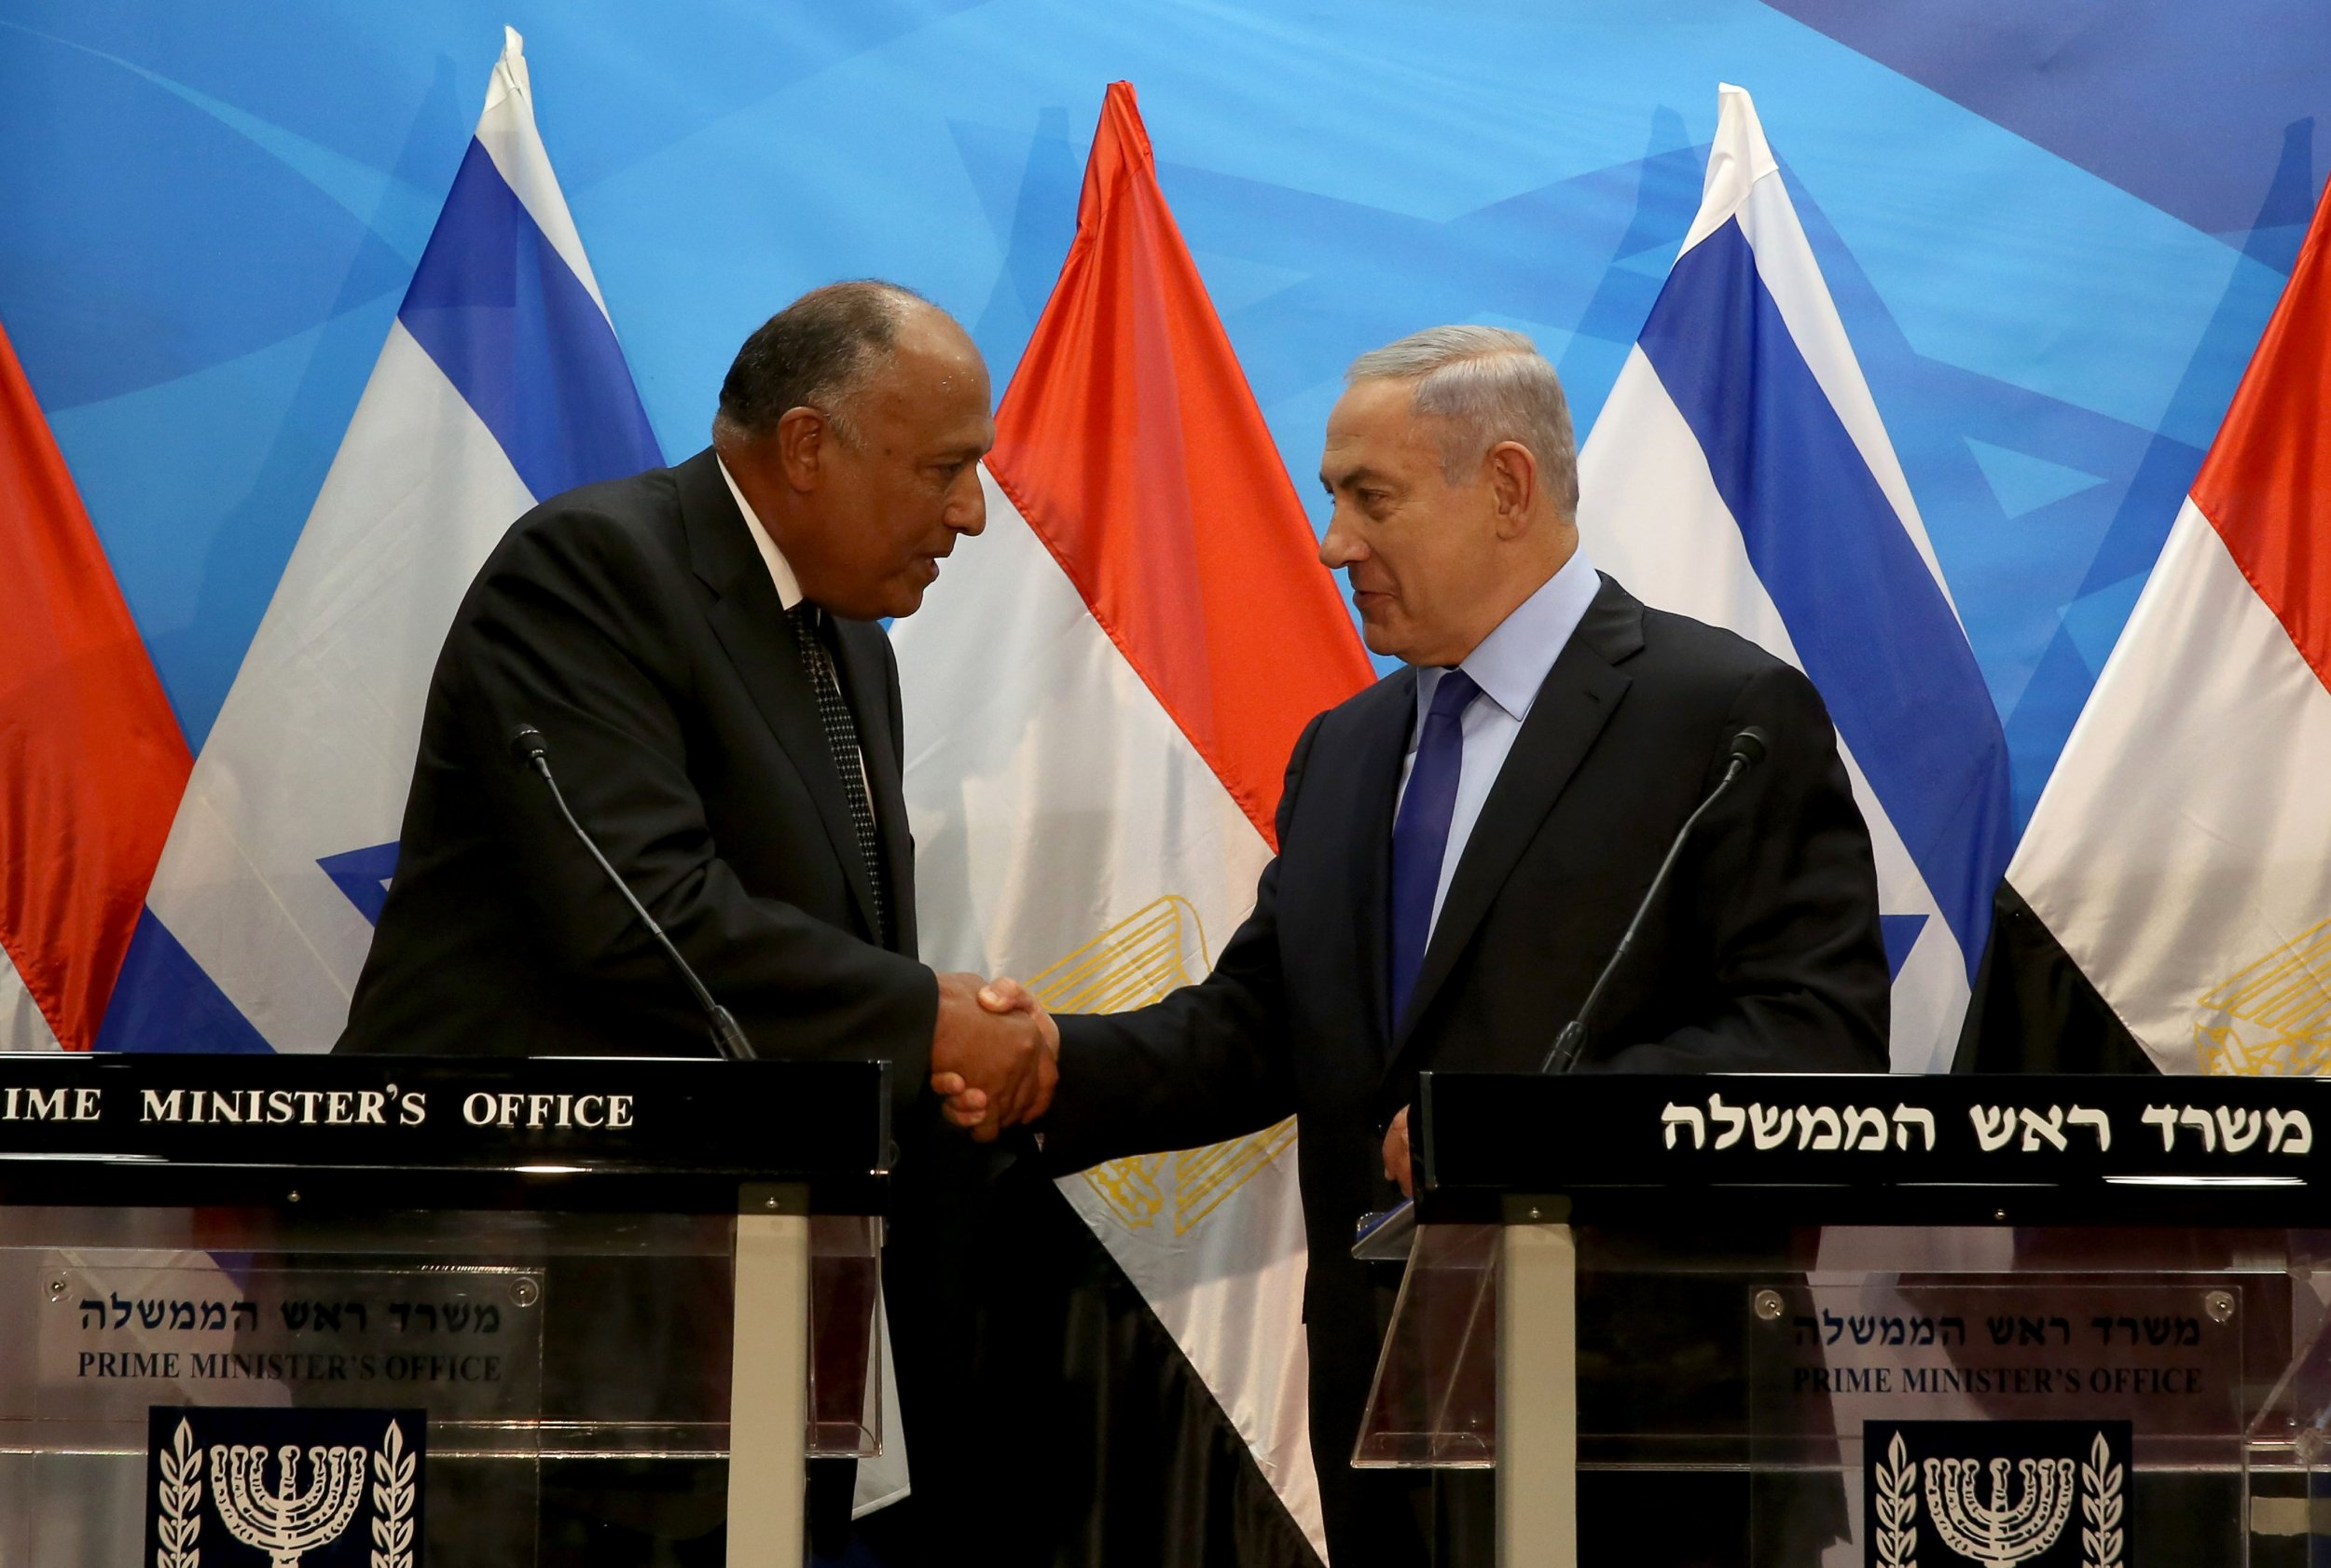 Benjamin Netanyahu and Sameh Shoukry